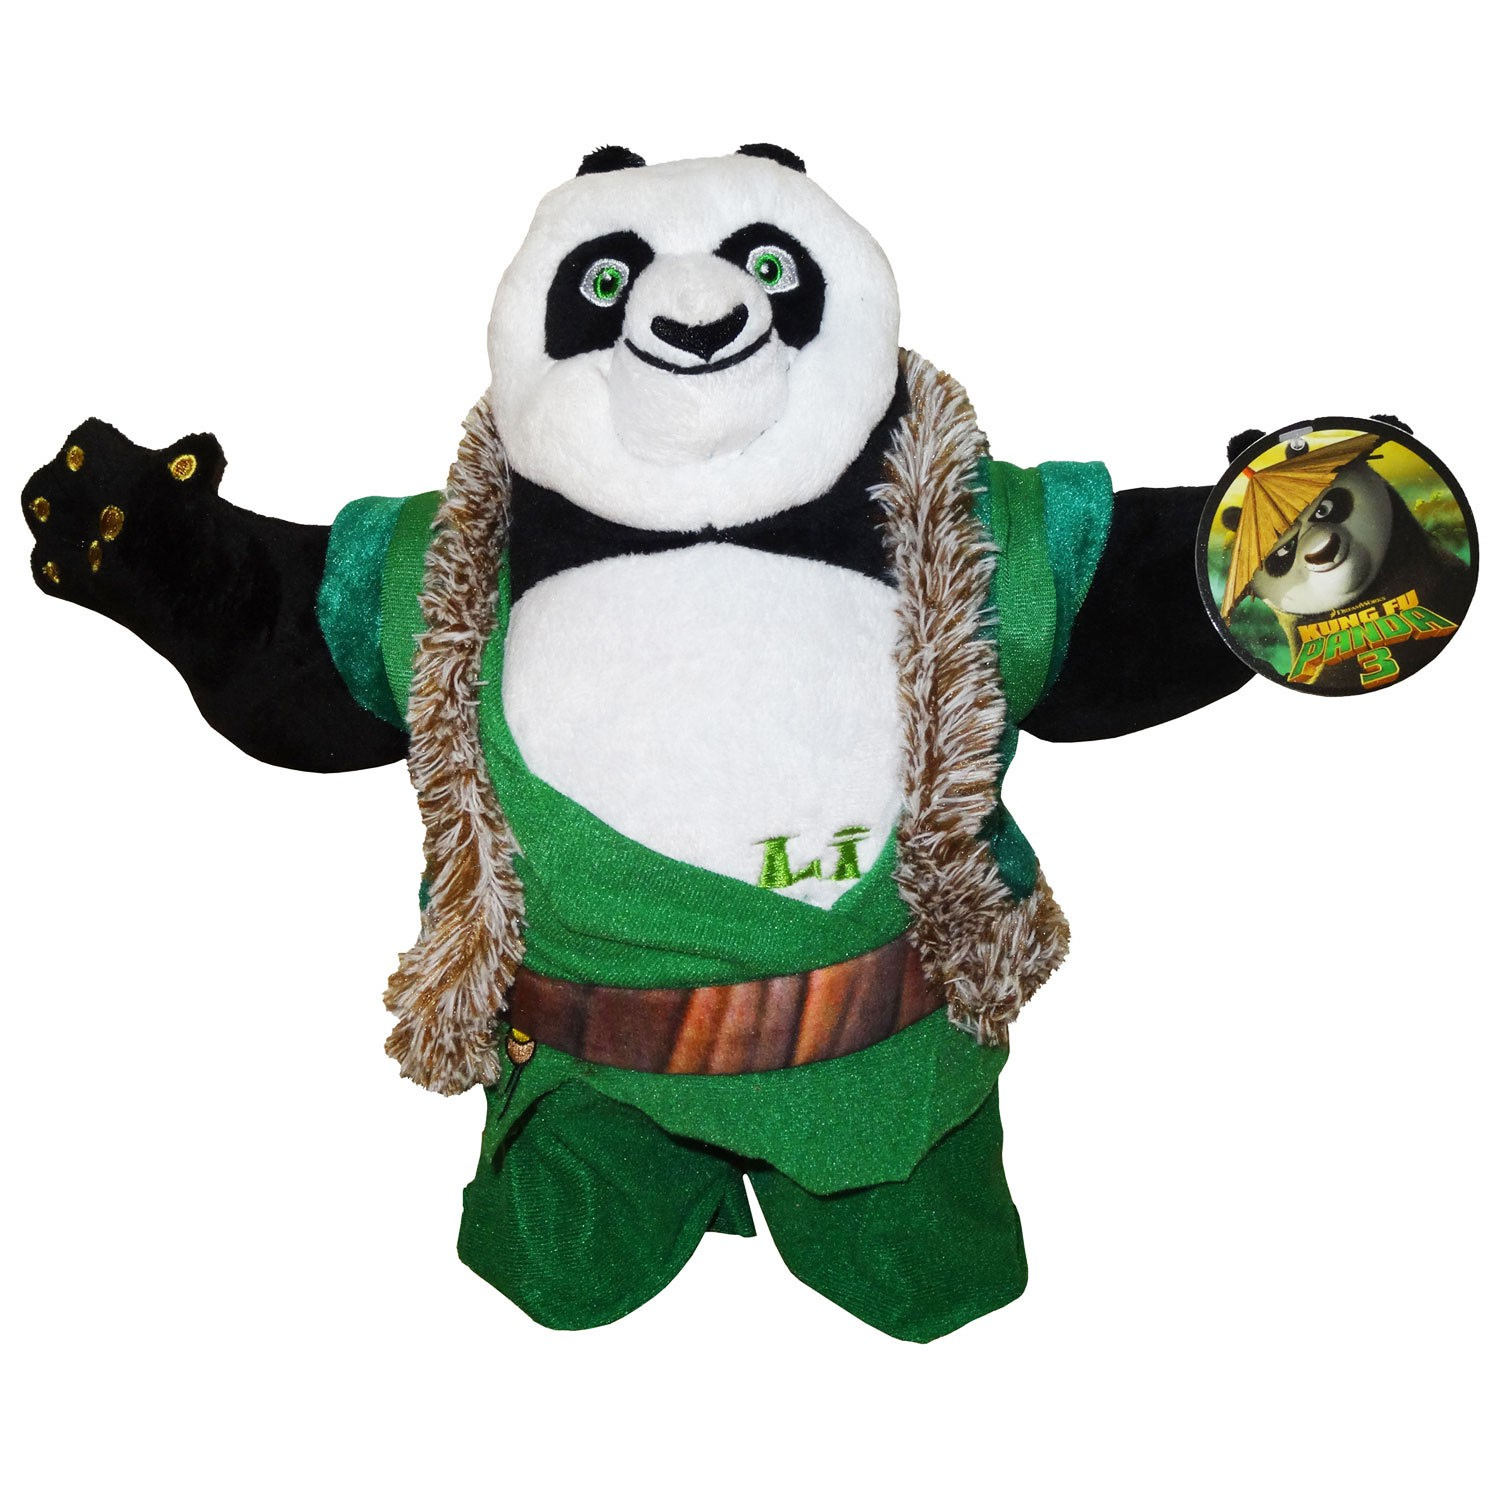 kung fu panda 3 peluche 30cm scelta personaggio top quality plush character new ebay. Black Bedroom Furniture Sets. Home Design Ideas